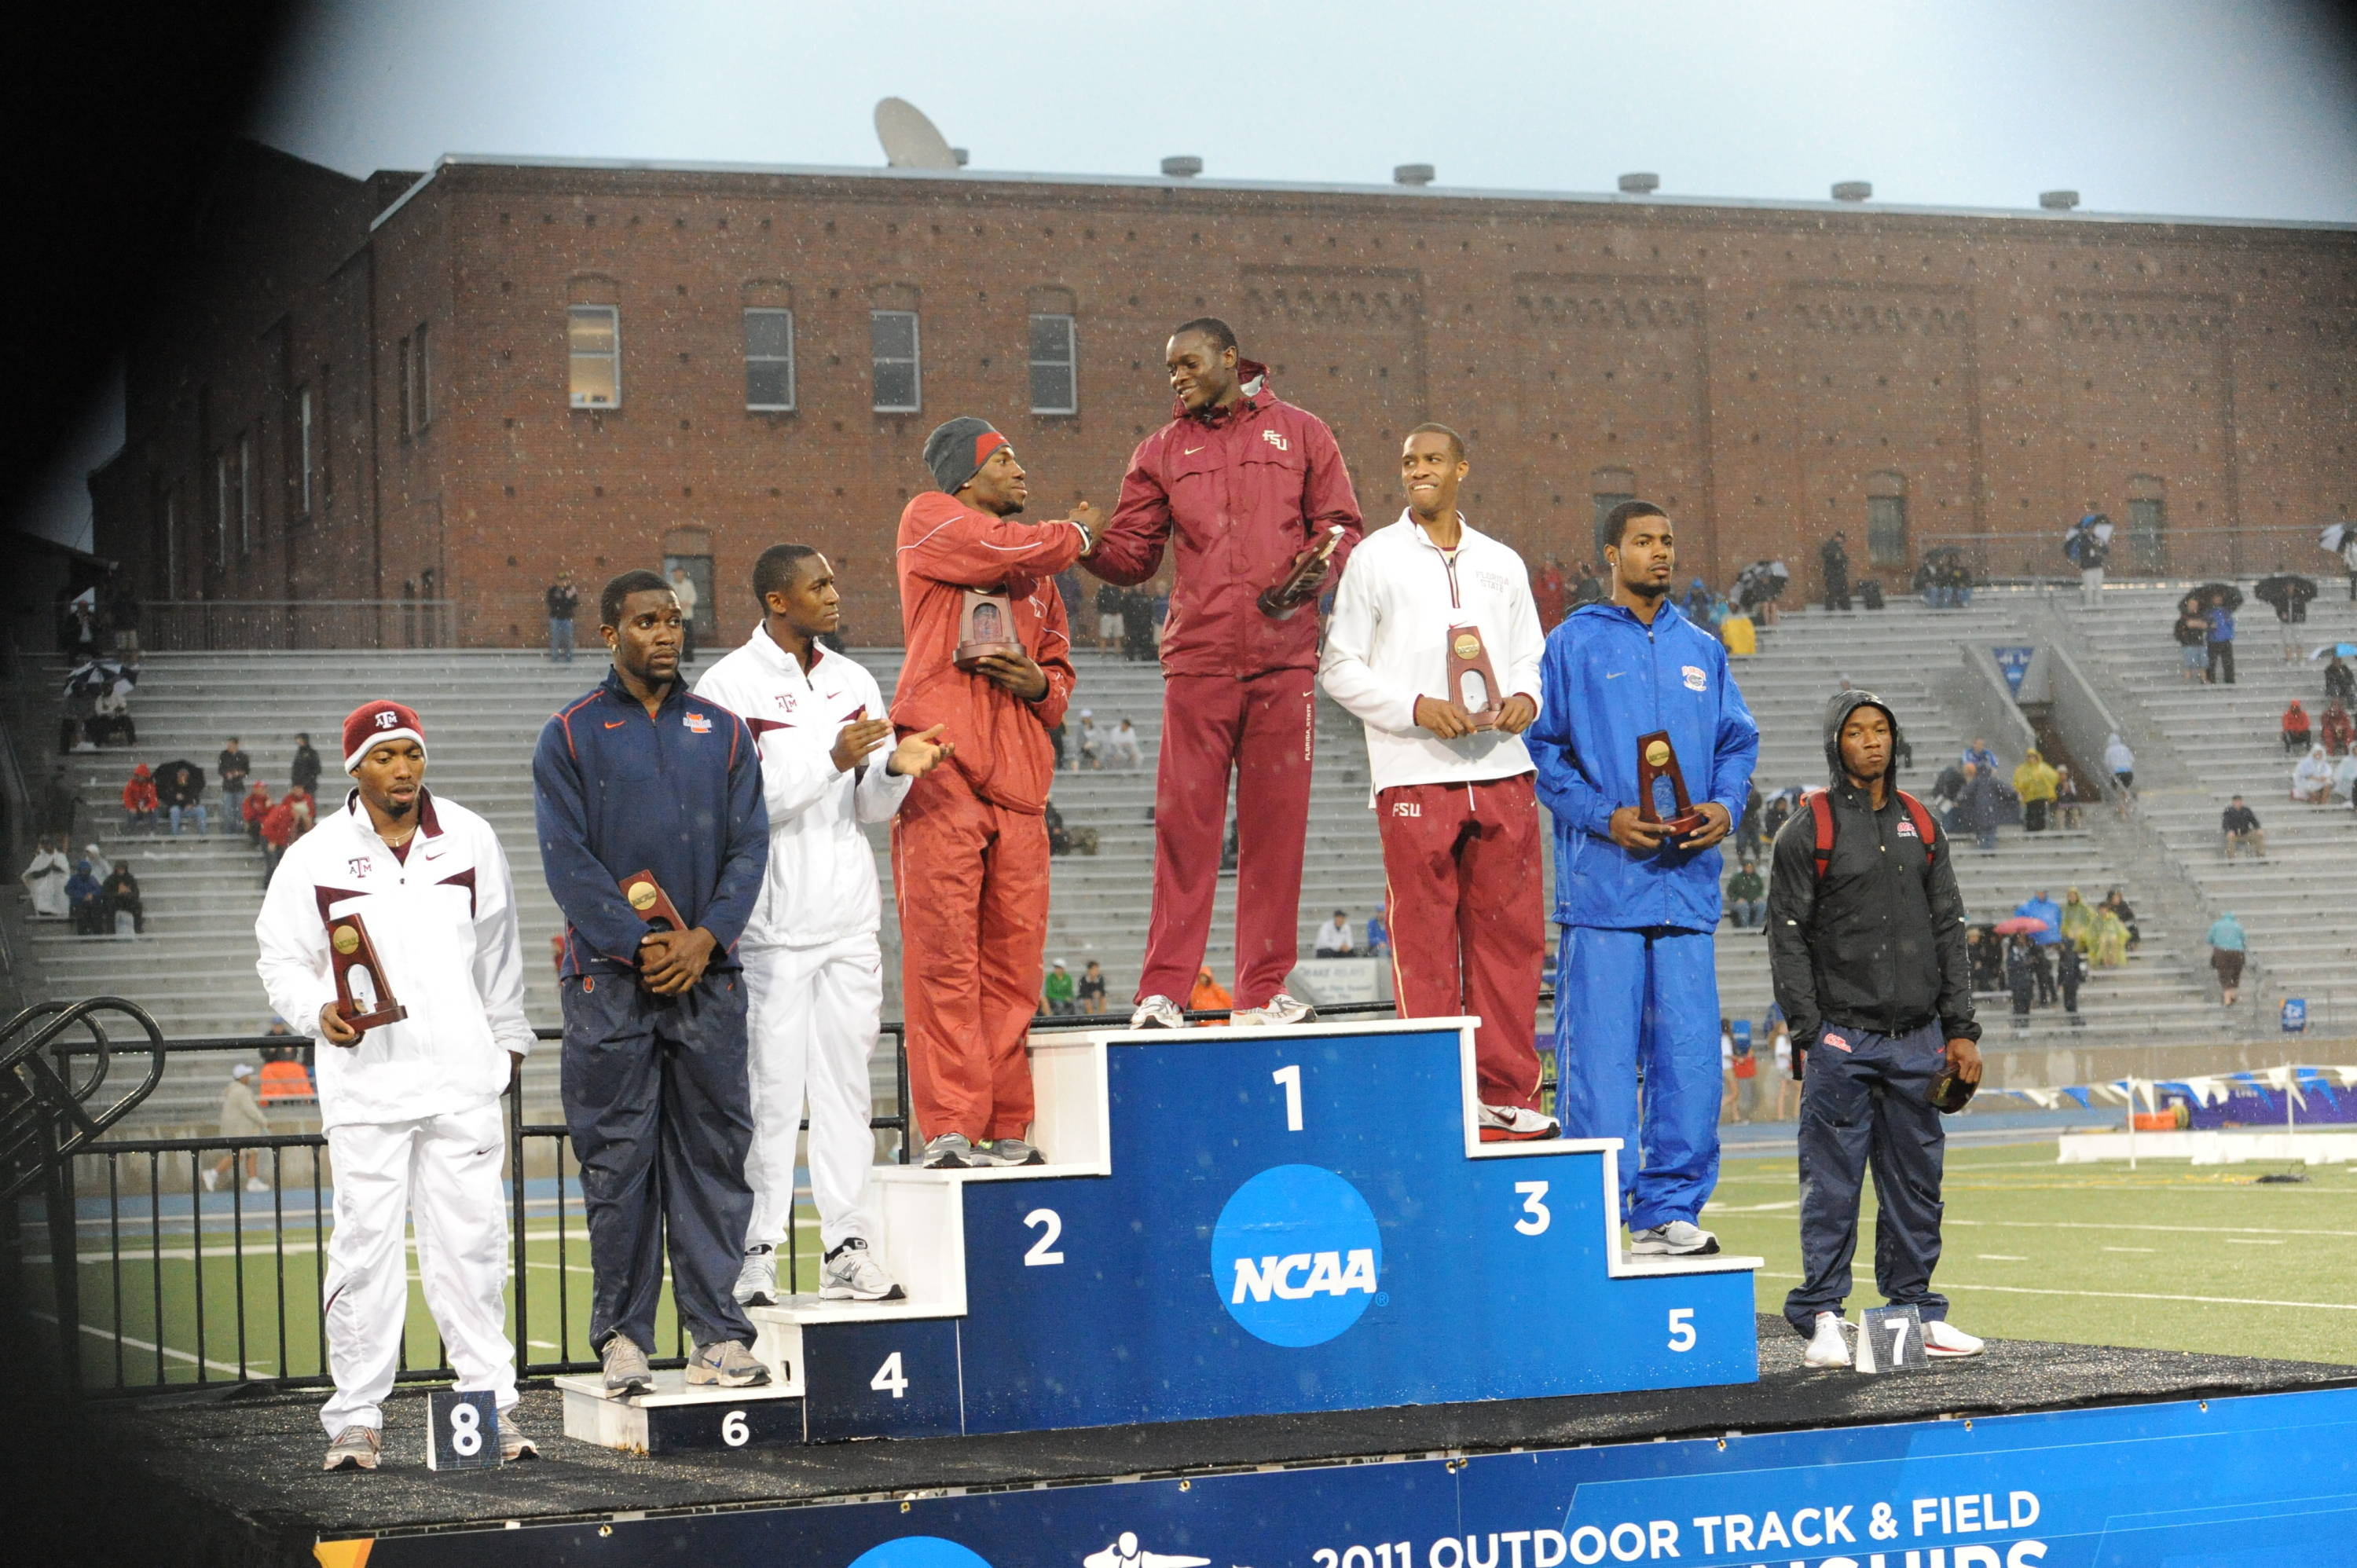 Standing atop the podium after his win in the 100 became a familiar sight throughout the NCAA meet as he was just warming up ...